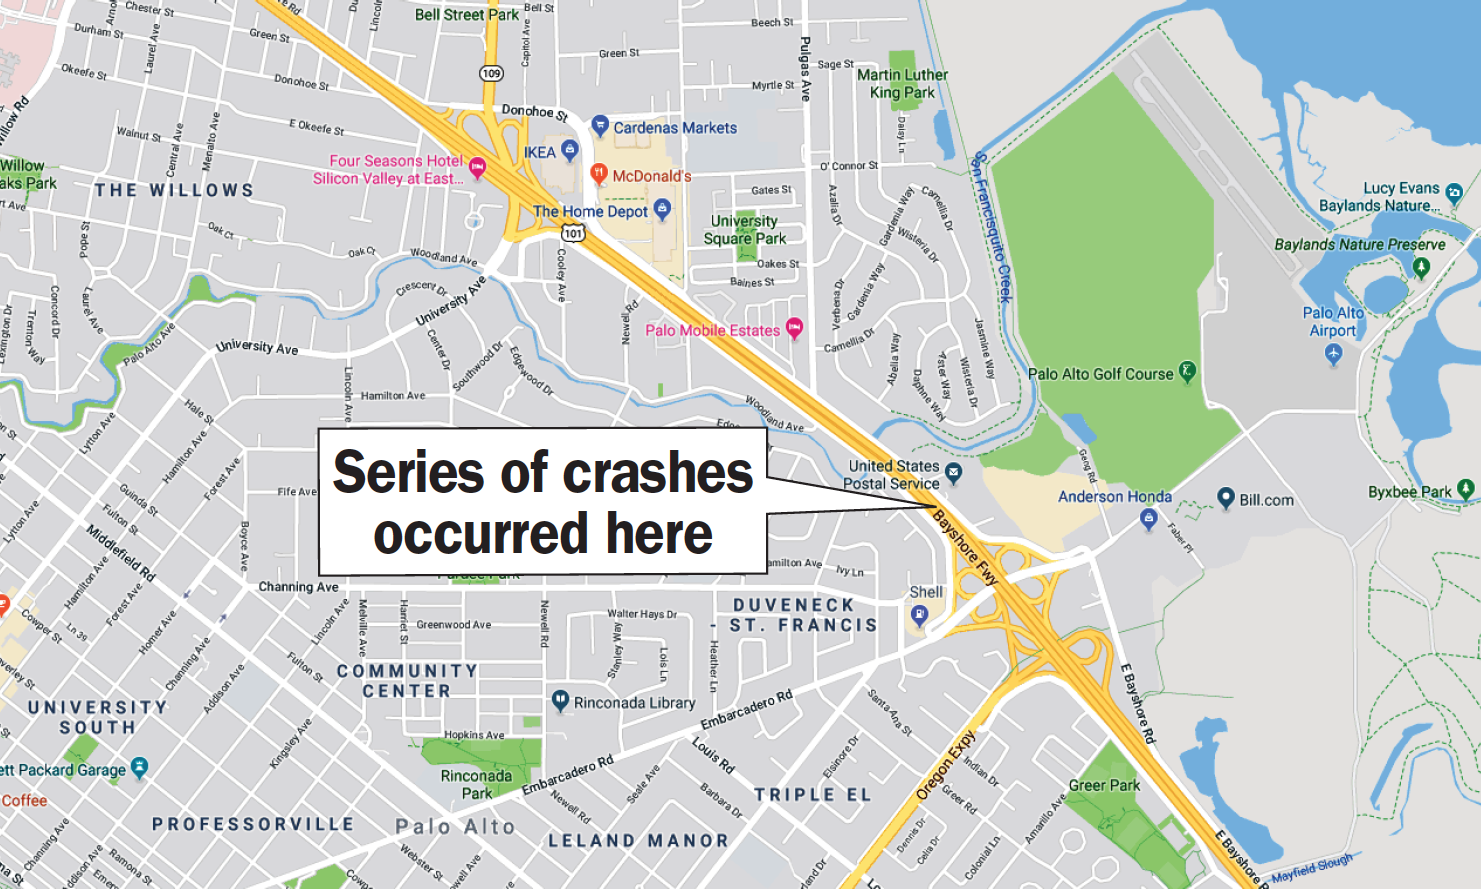 1 dead, 5 injured in a series of car accidents on 101 - Palo